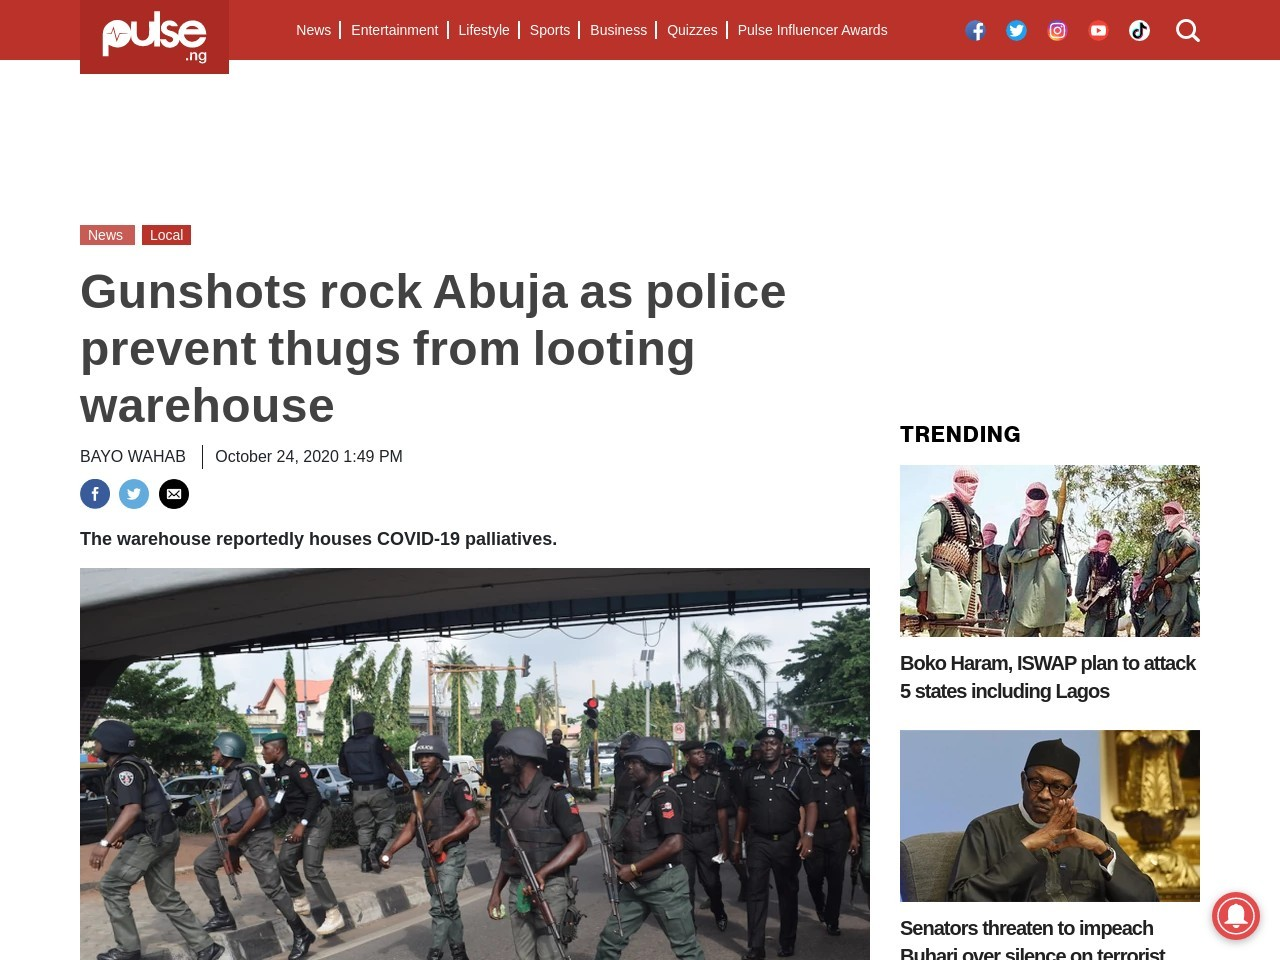 Gunshots rock Abuja as police prevent thugs from looting warehouse